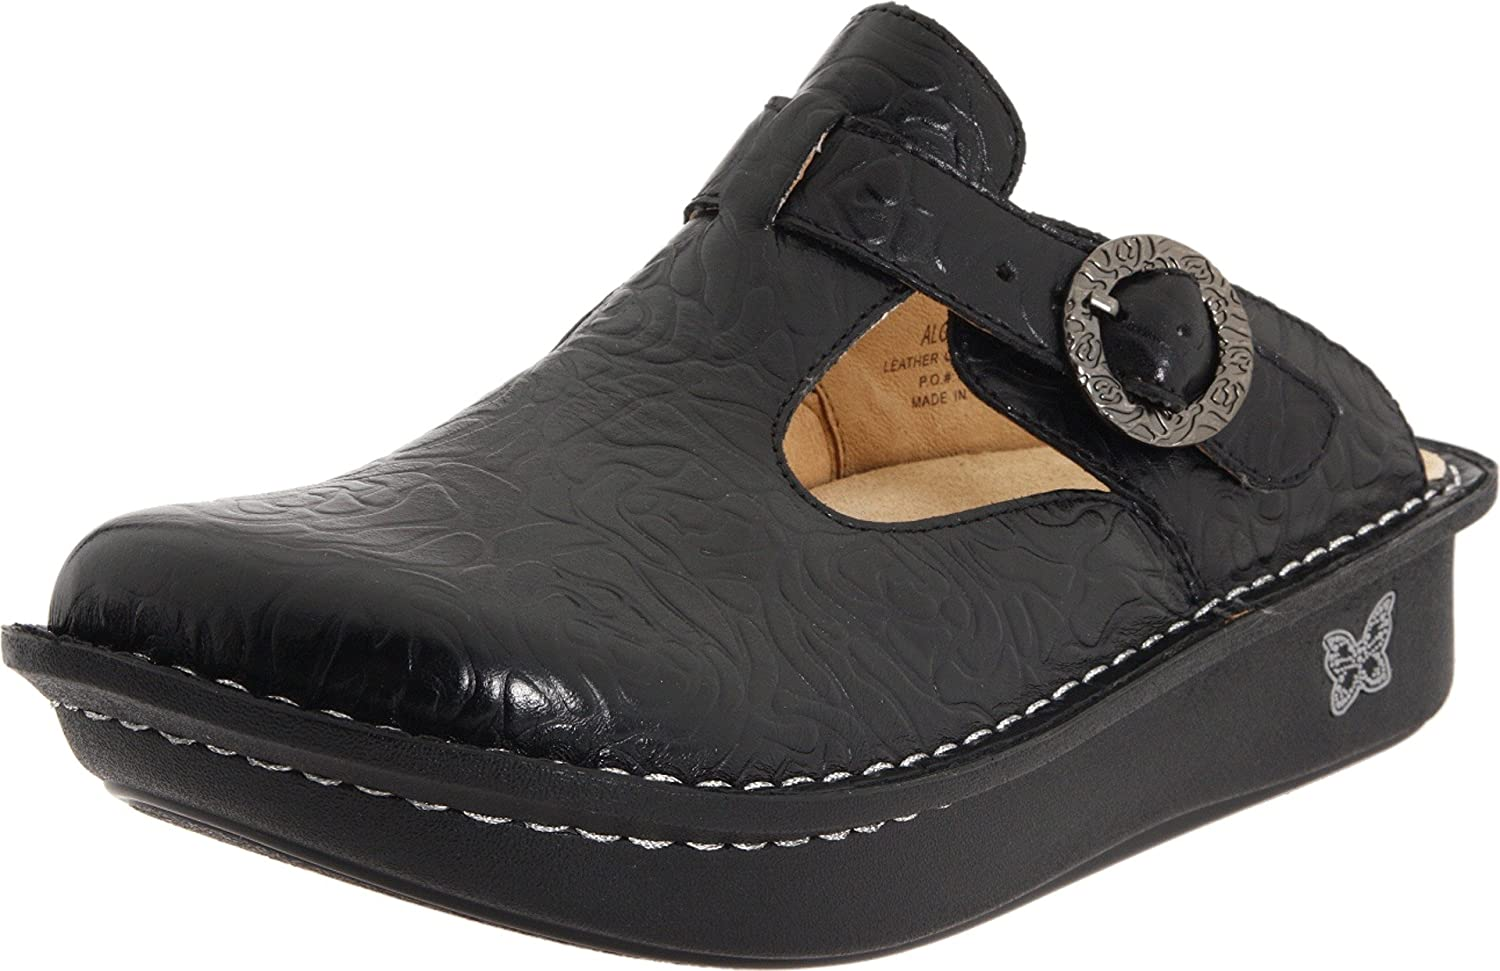 Alegria Women's Classic Clog B00C40V50I 36 M EU / 6-6.5 C/D US|Black Emboss Rose Leather